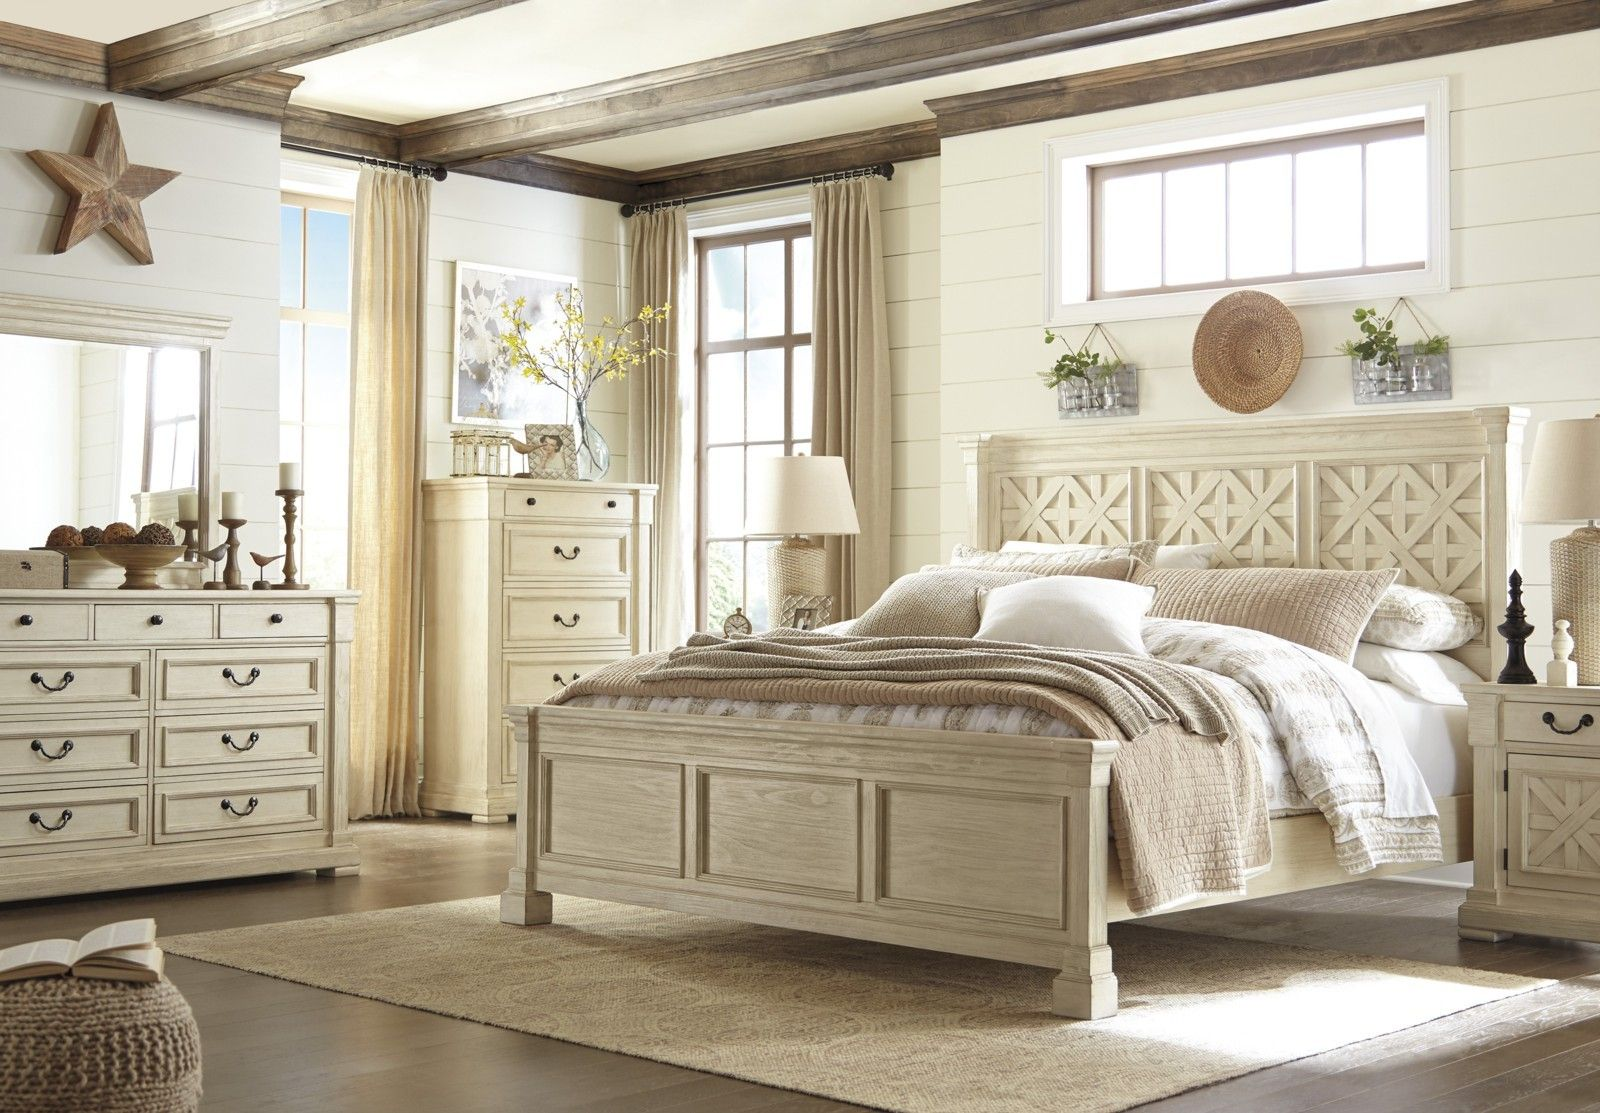 Best Bolanburg Queen Panel Bed In White With Night Table 400 x 300